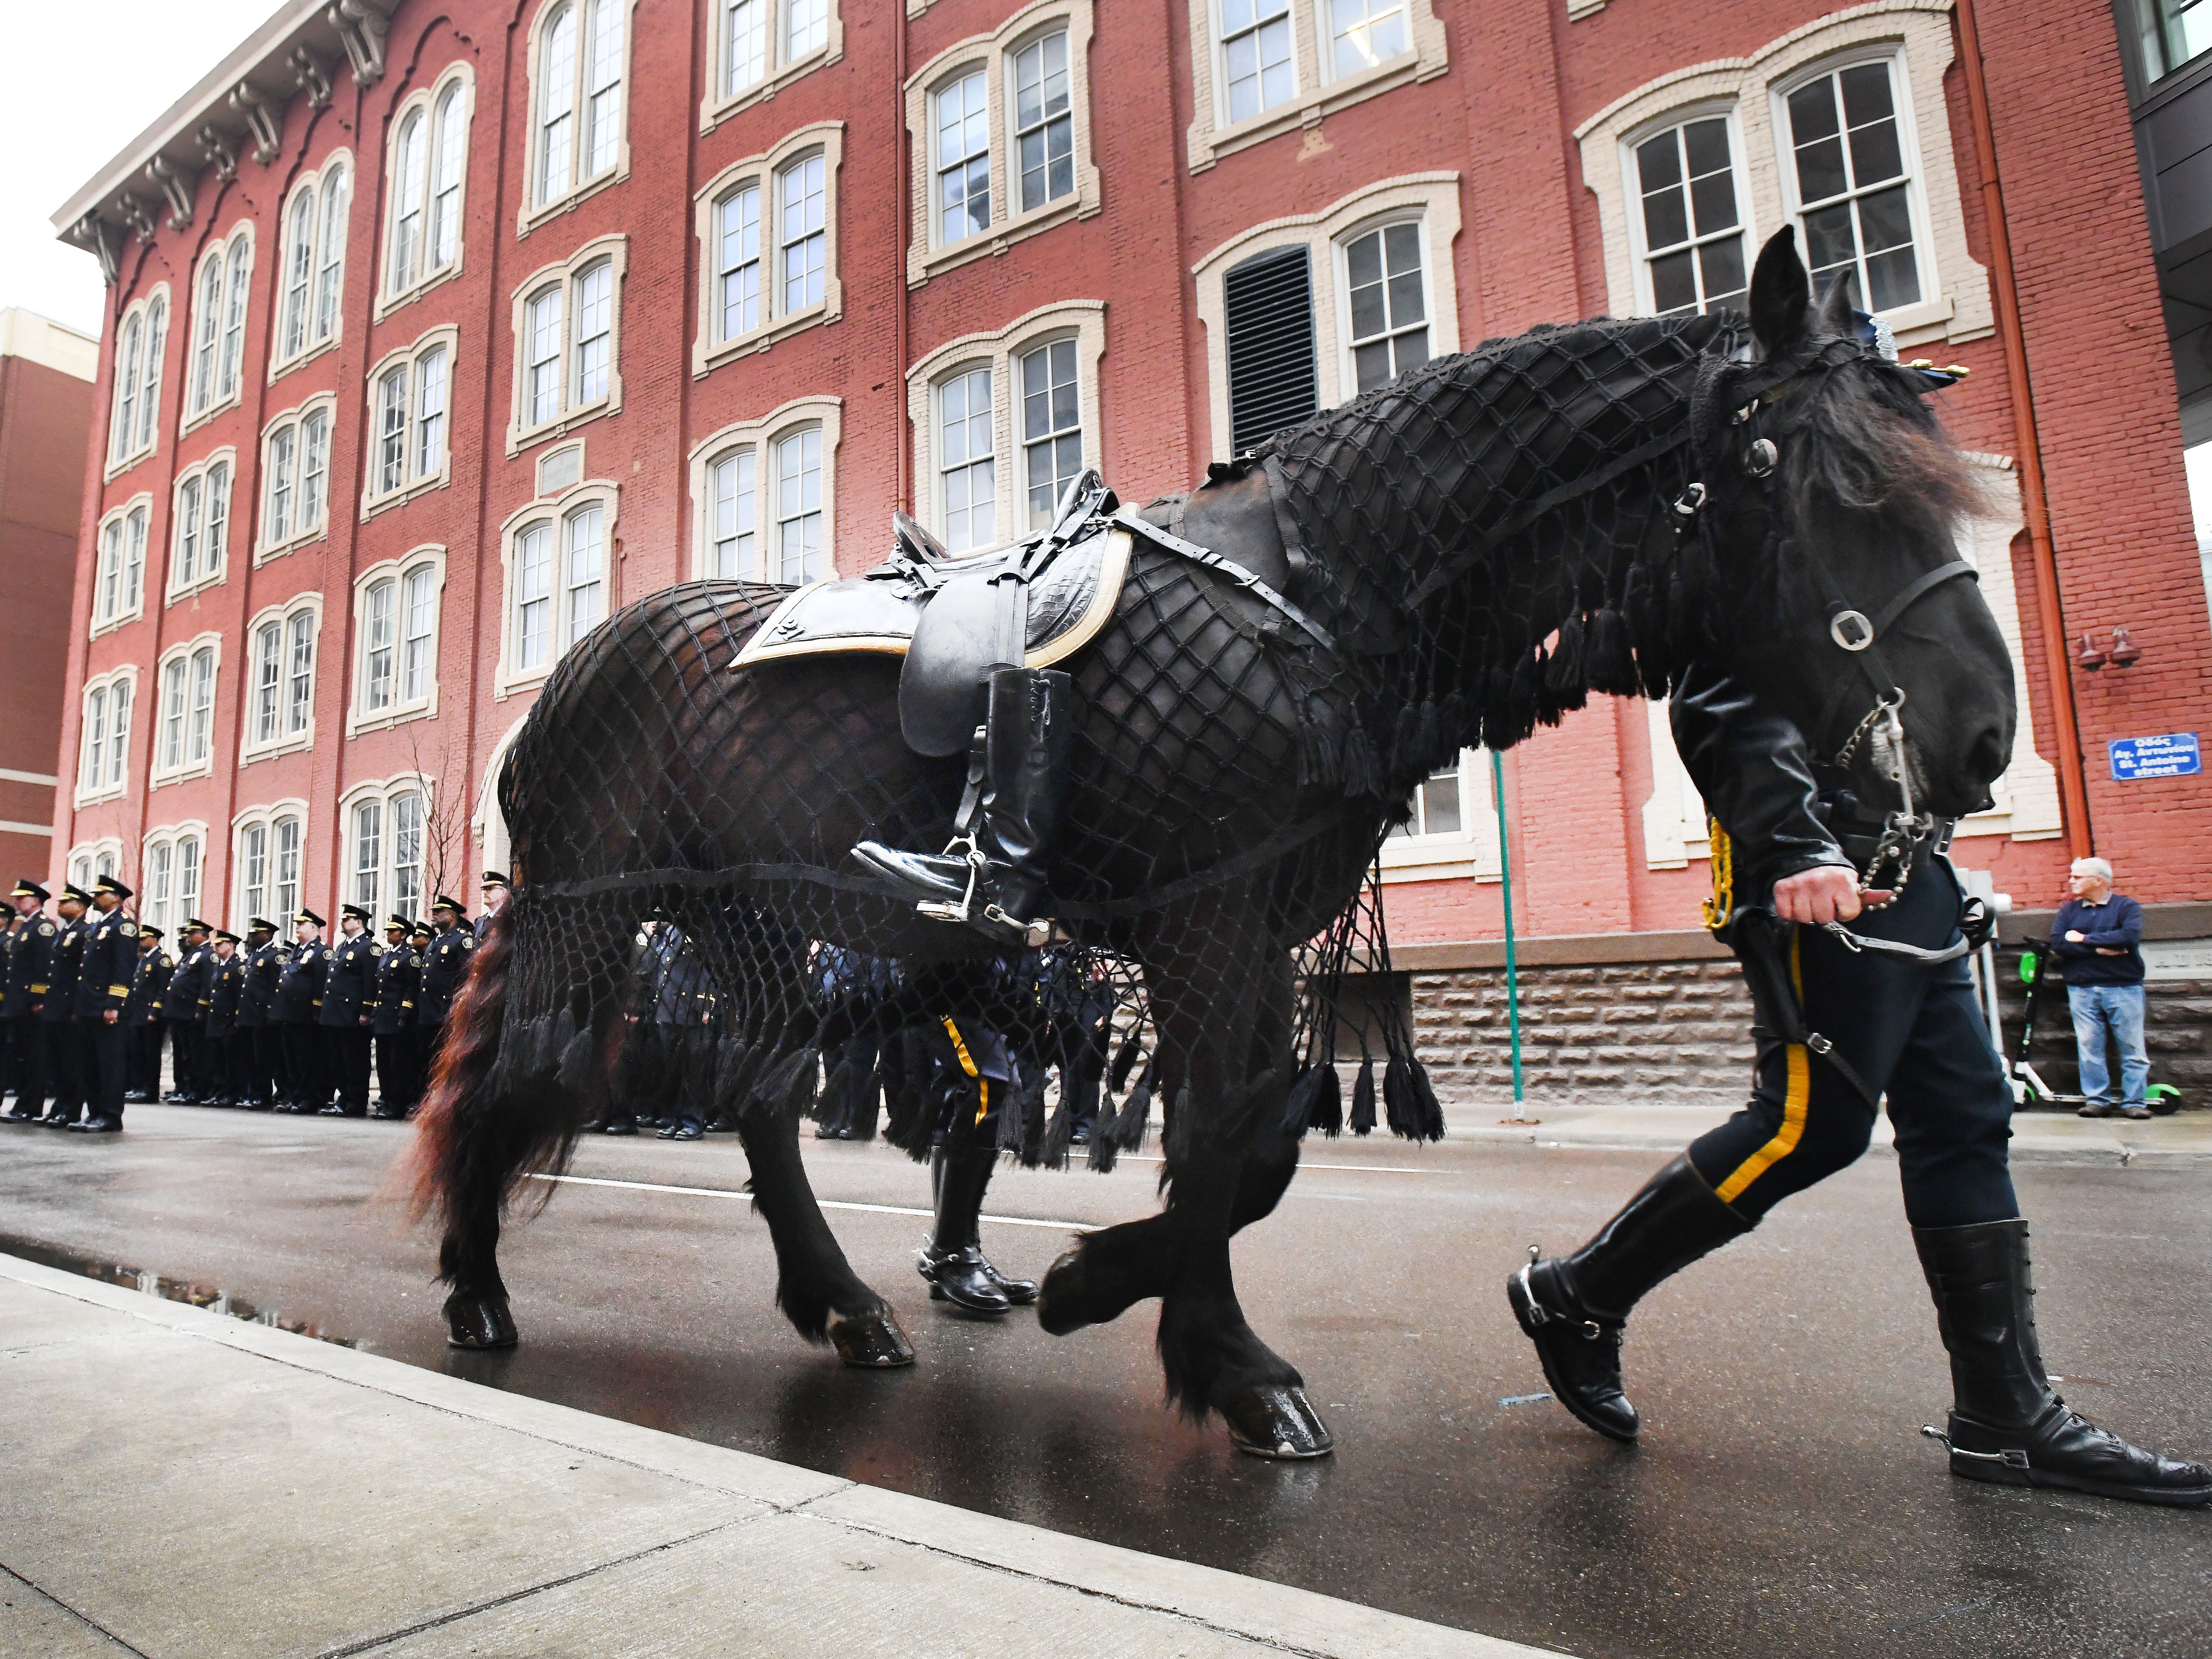 A riderless horse, with boots reversed in the stirrups, passes by the officers before the 46th Annual Detroit Police Interfaith Memorial Service.